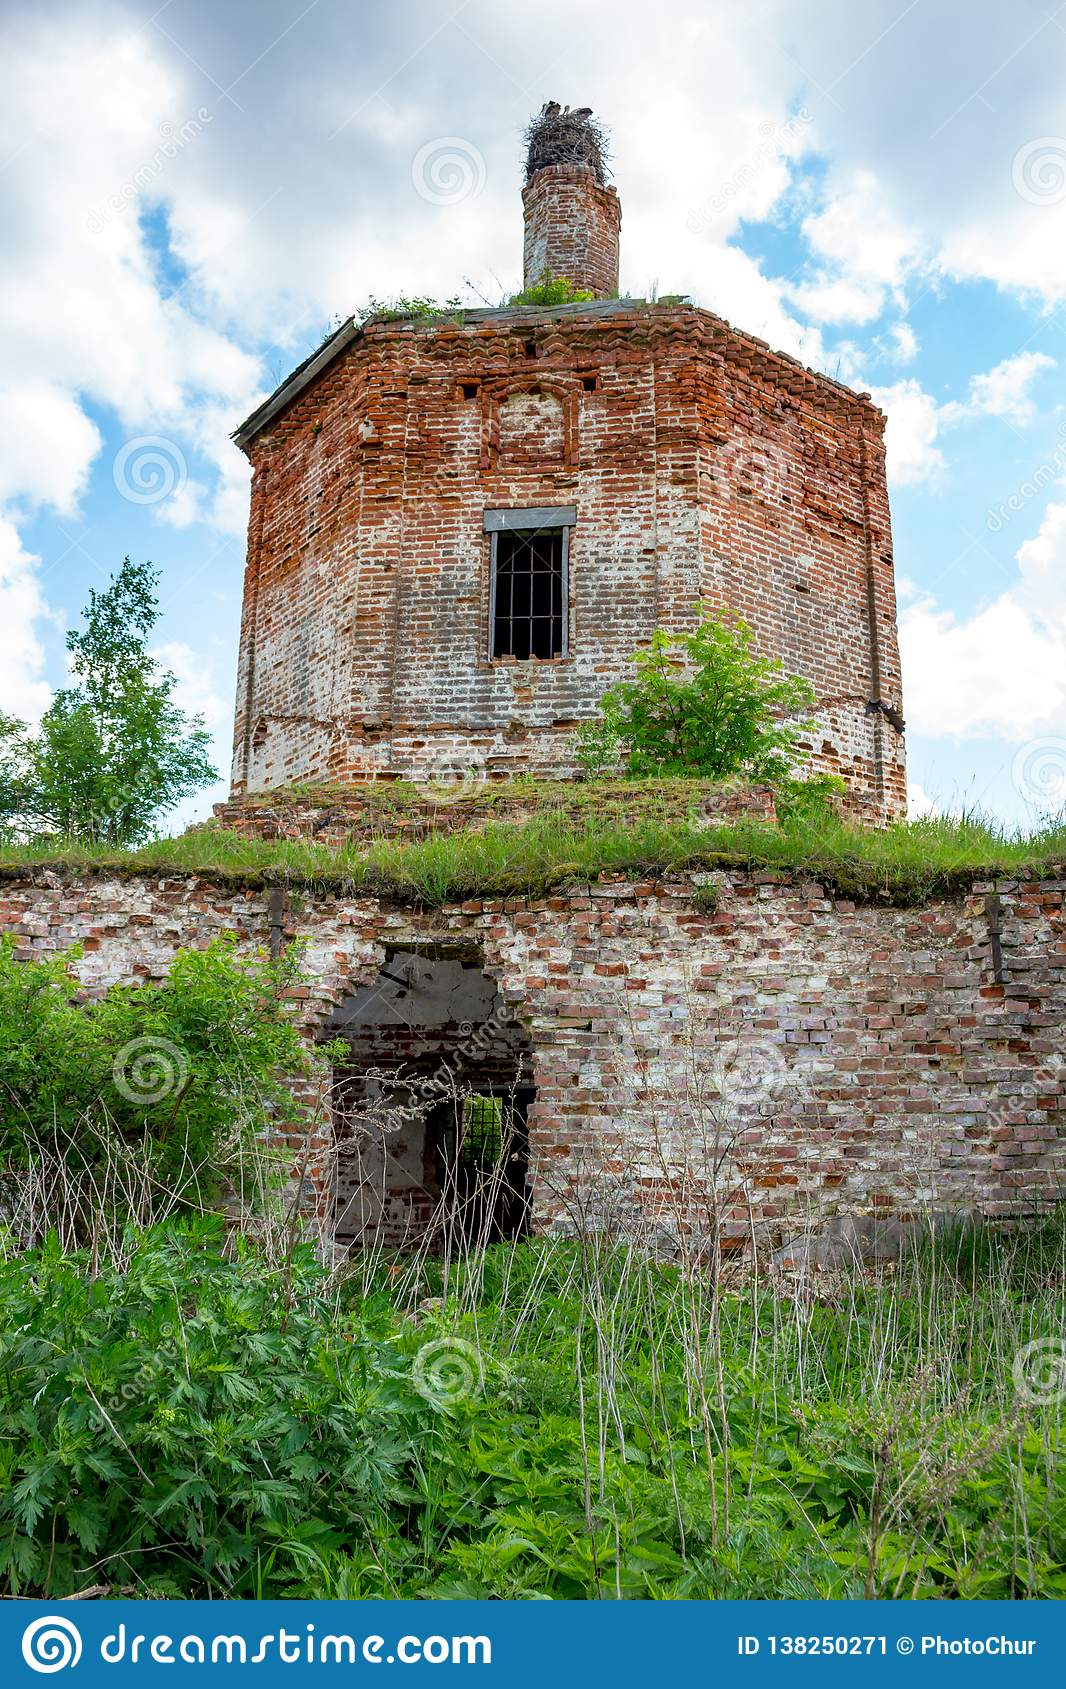 Ruins of the abandoned church of St. John the Evangelist of the 18th century